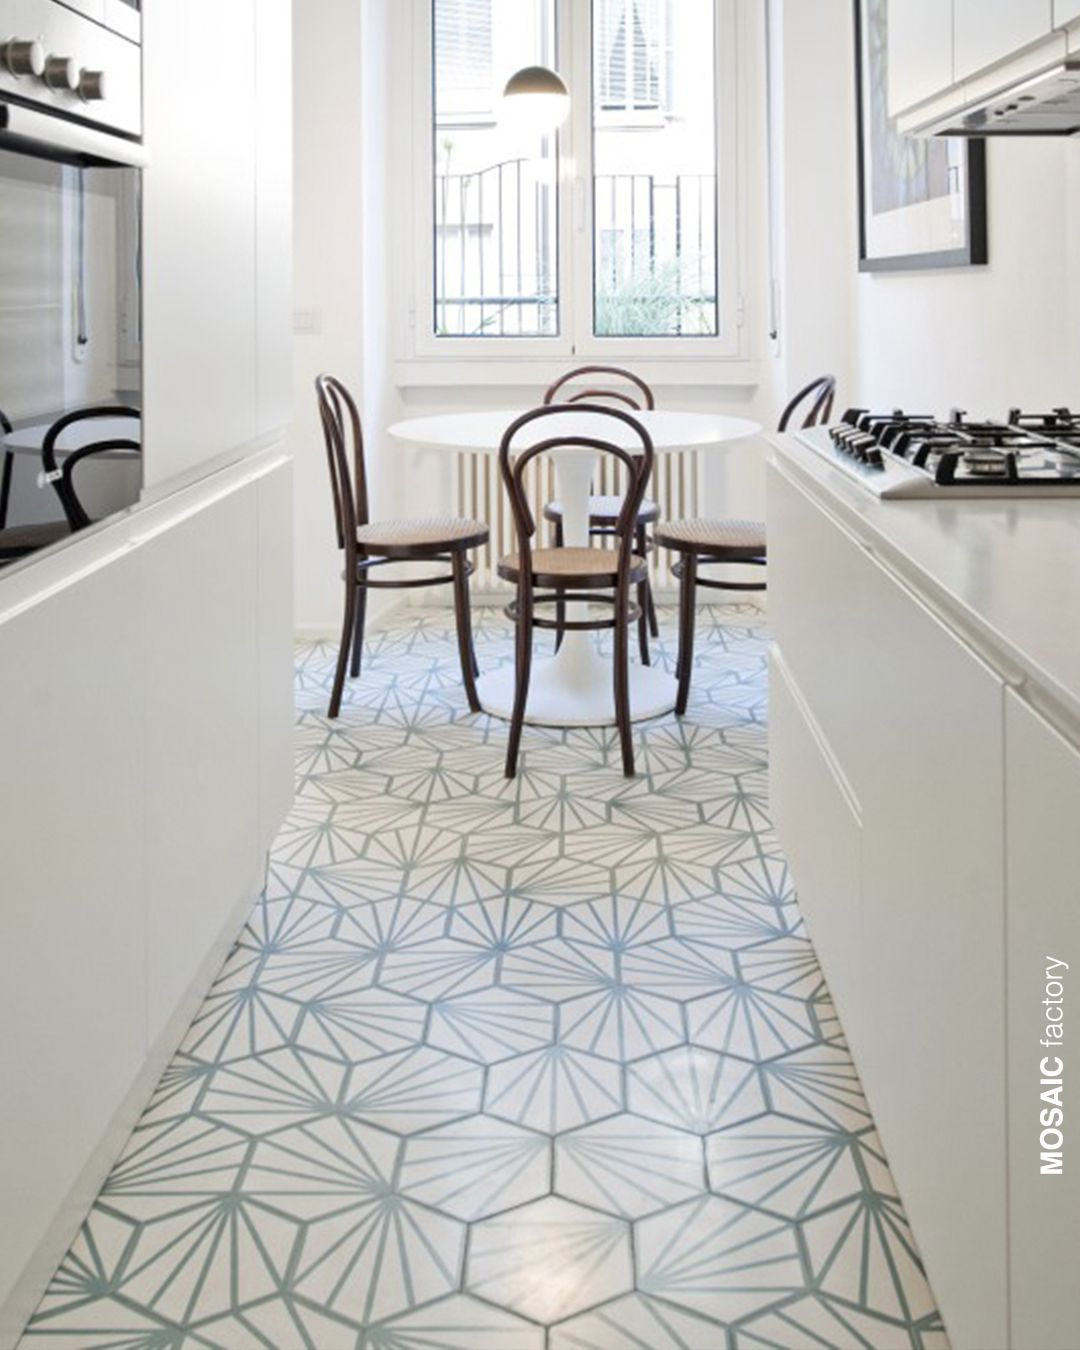 Kitchen Floor With Hexagonal Cement Tile In White And Mint Green From Mosaic Factory Patterned Concrete Tile For Wall An Kitchen Flooring Cement Tile Flooring